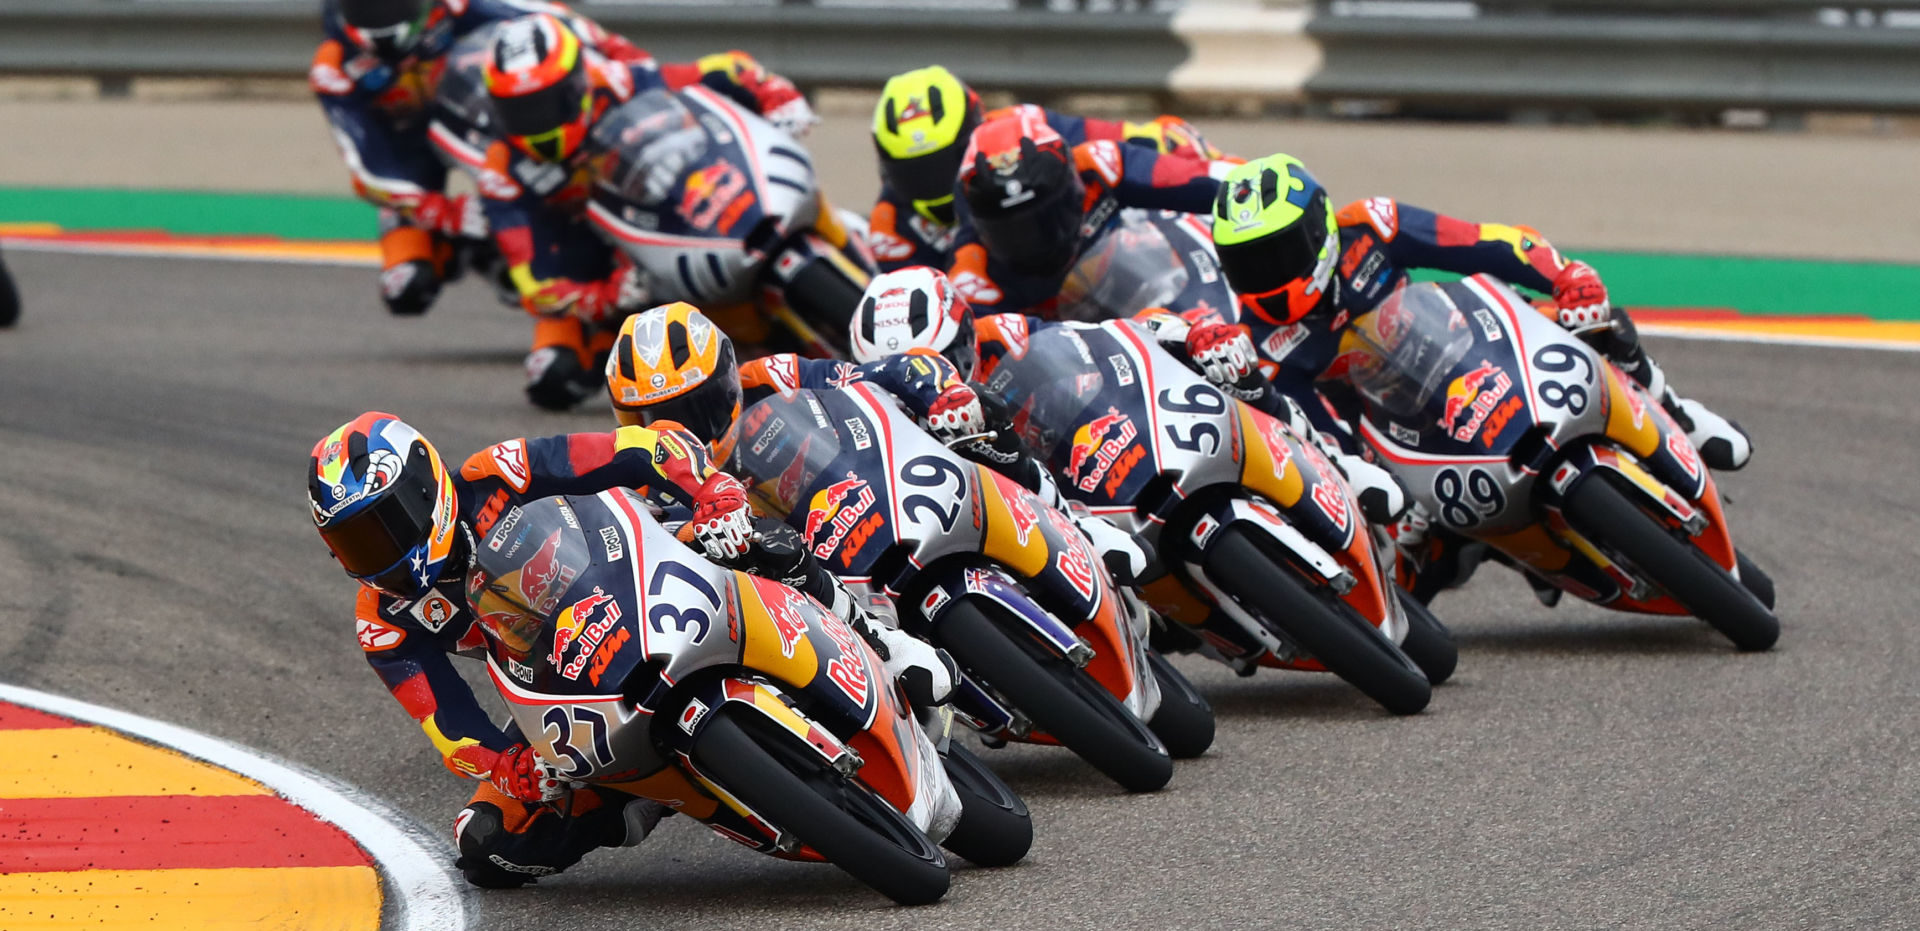 New Red Bull Motogp Rookies Cup Schedule Released Roadracing World Magazine Motorcycle Riding Racing Tech News